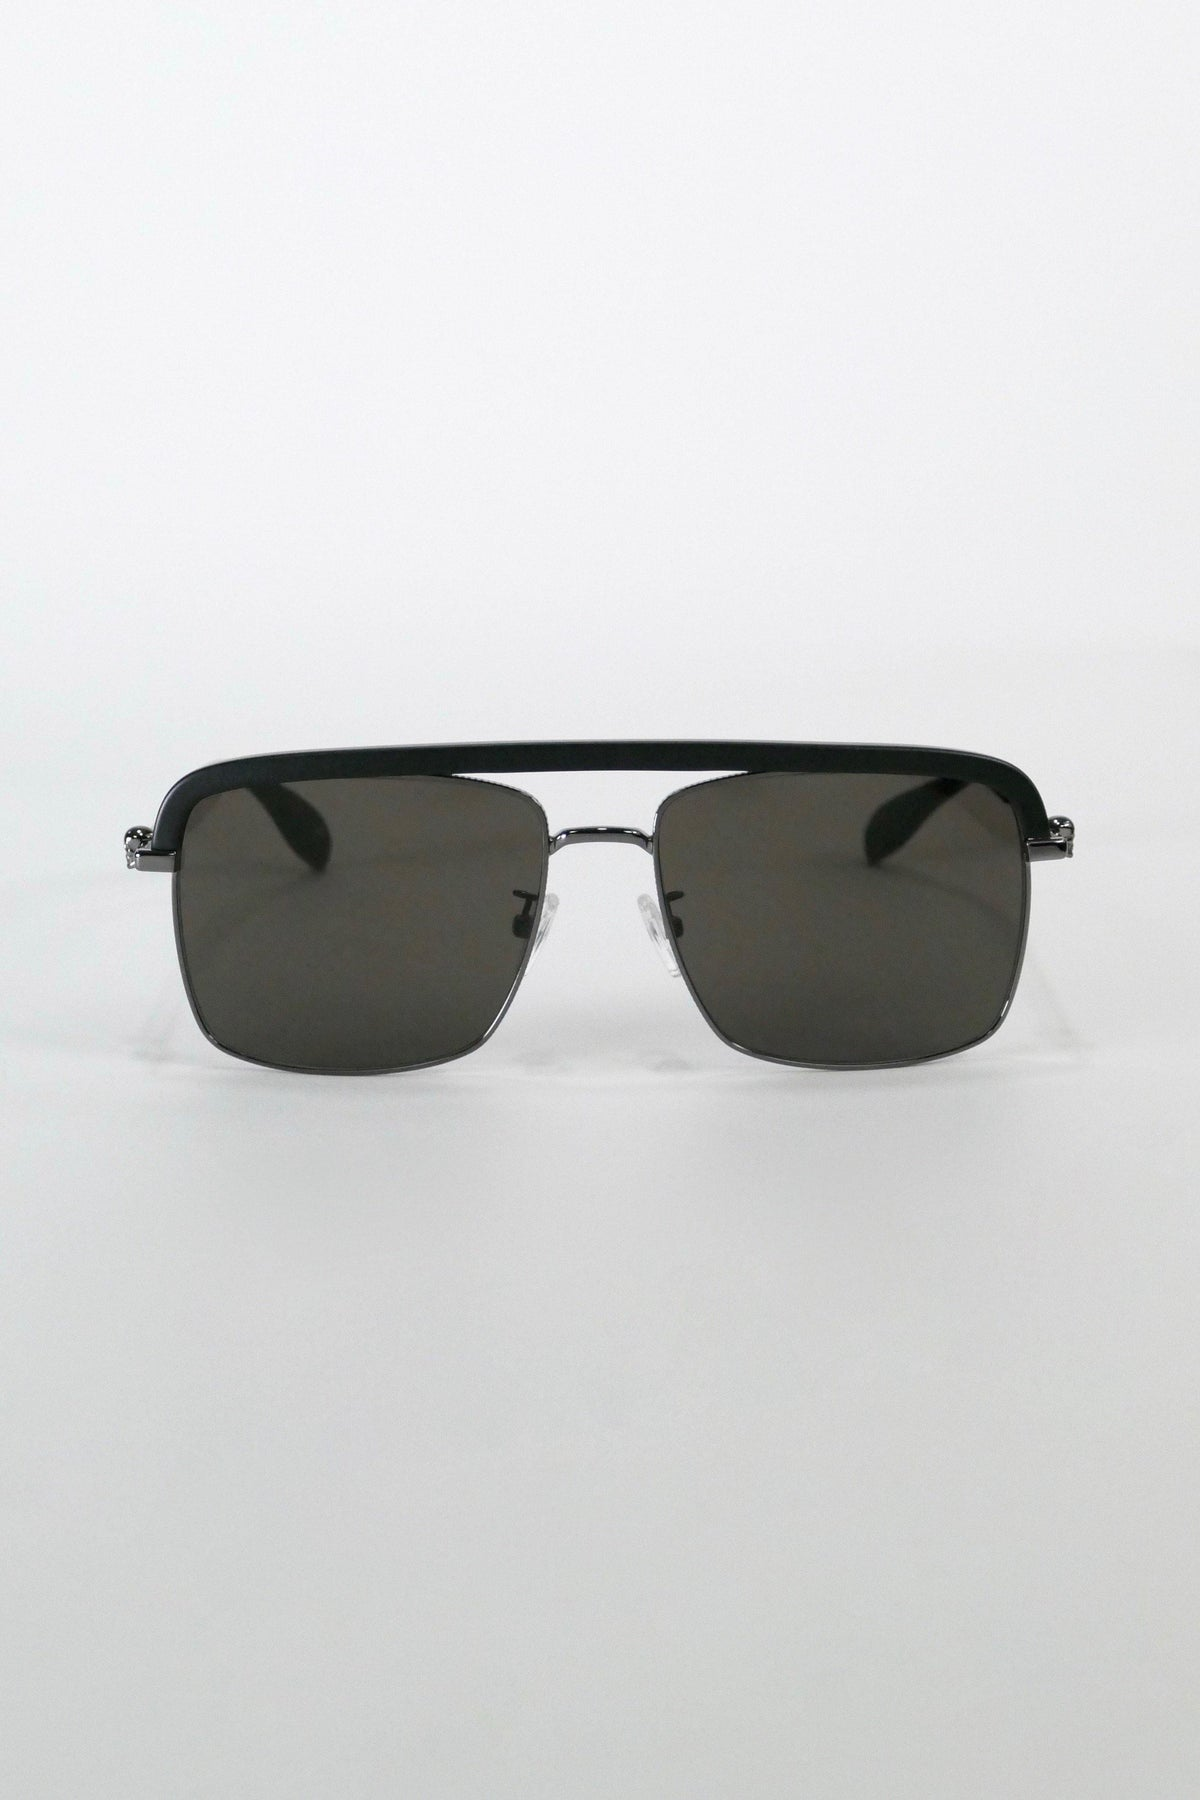 Alexander McQueen Sunglasses AM0258S 002 59 Ruthenium